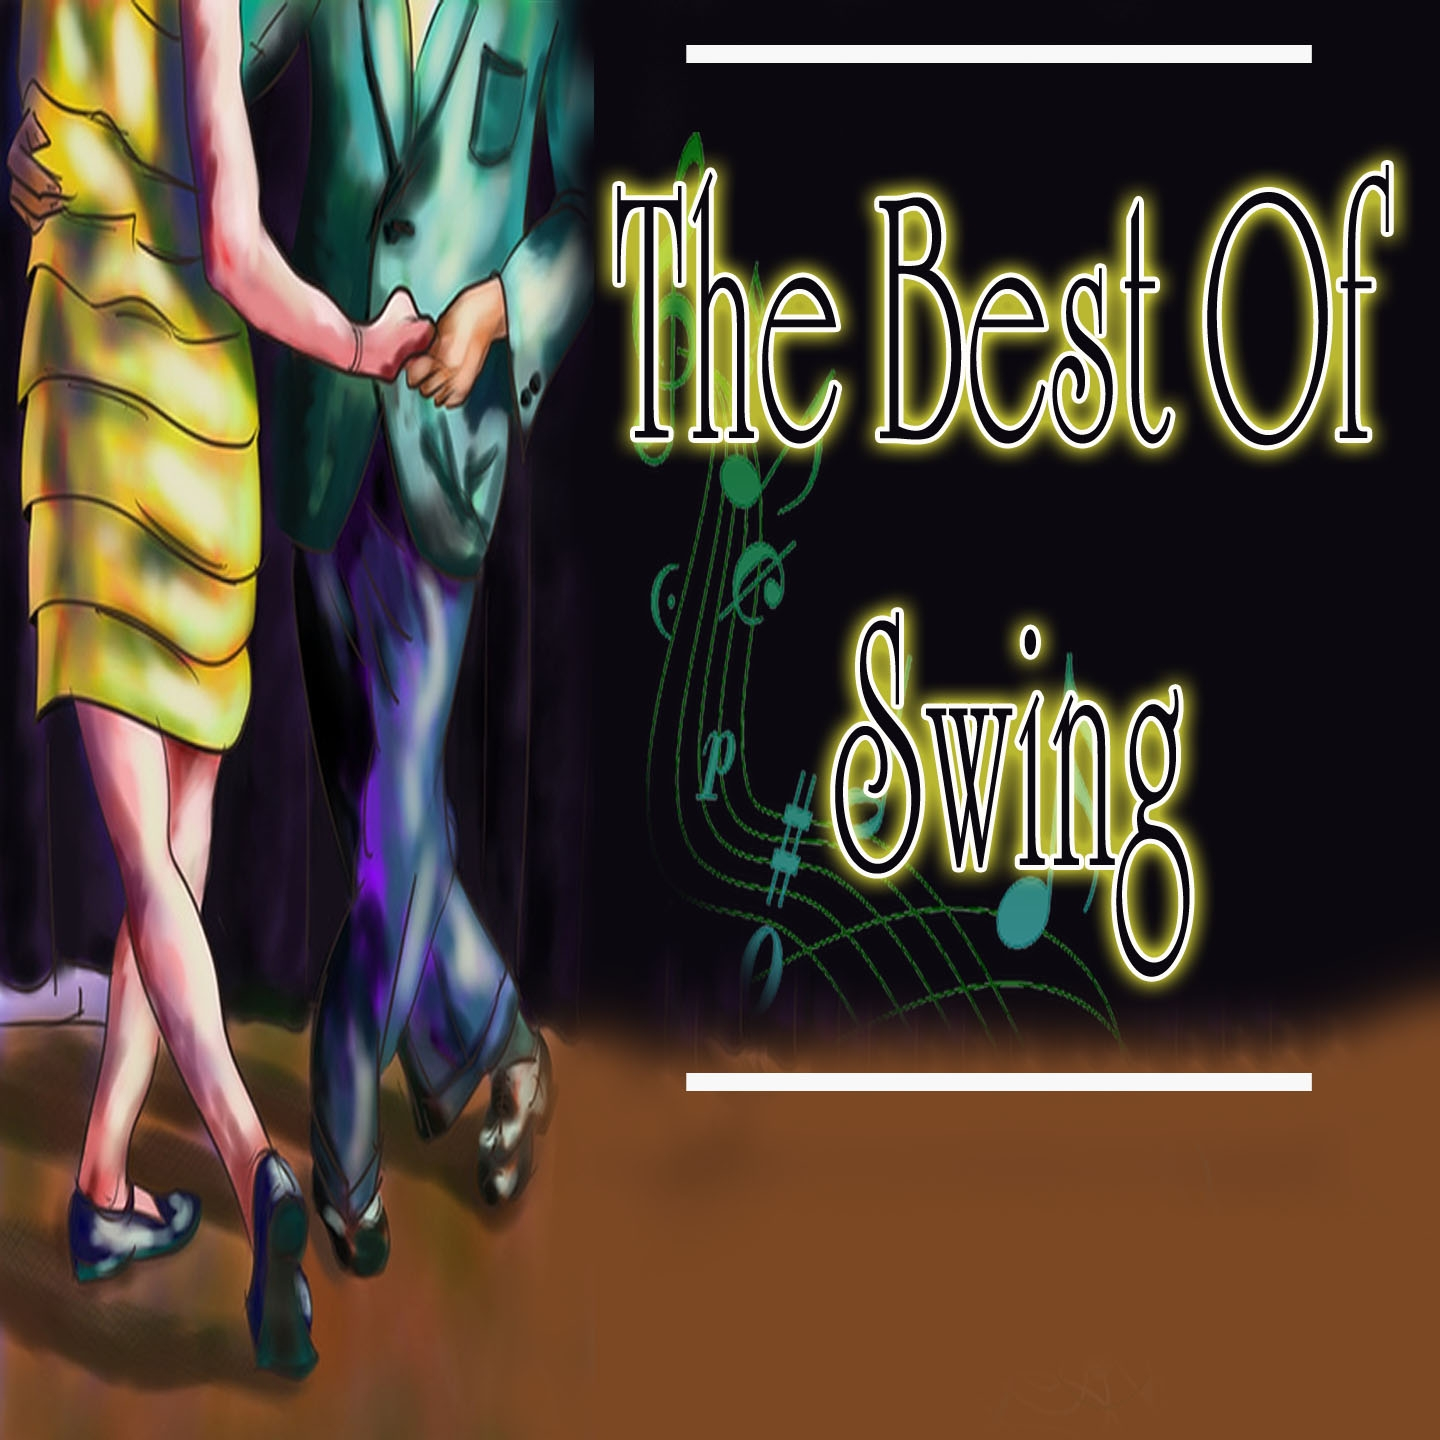 The Best of Swing